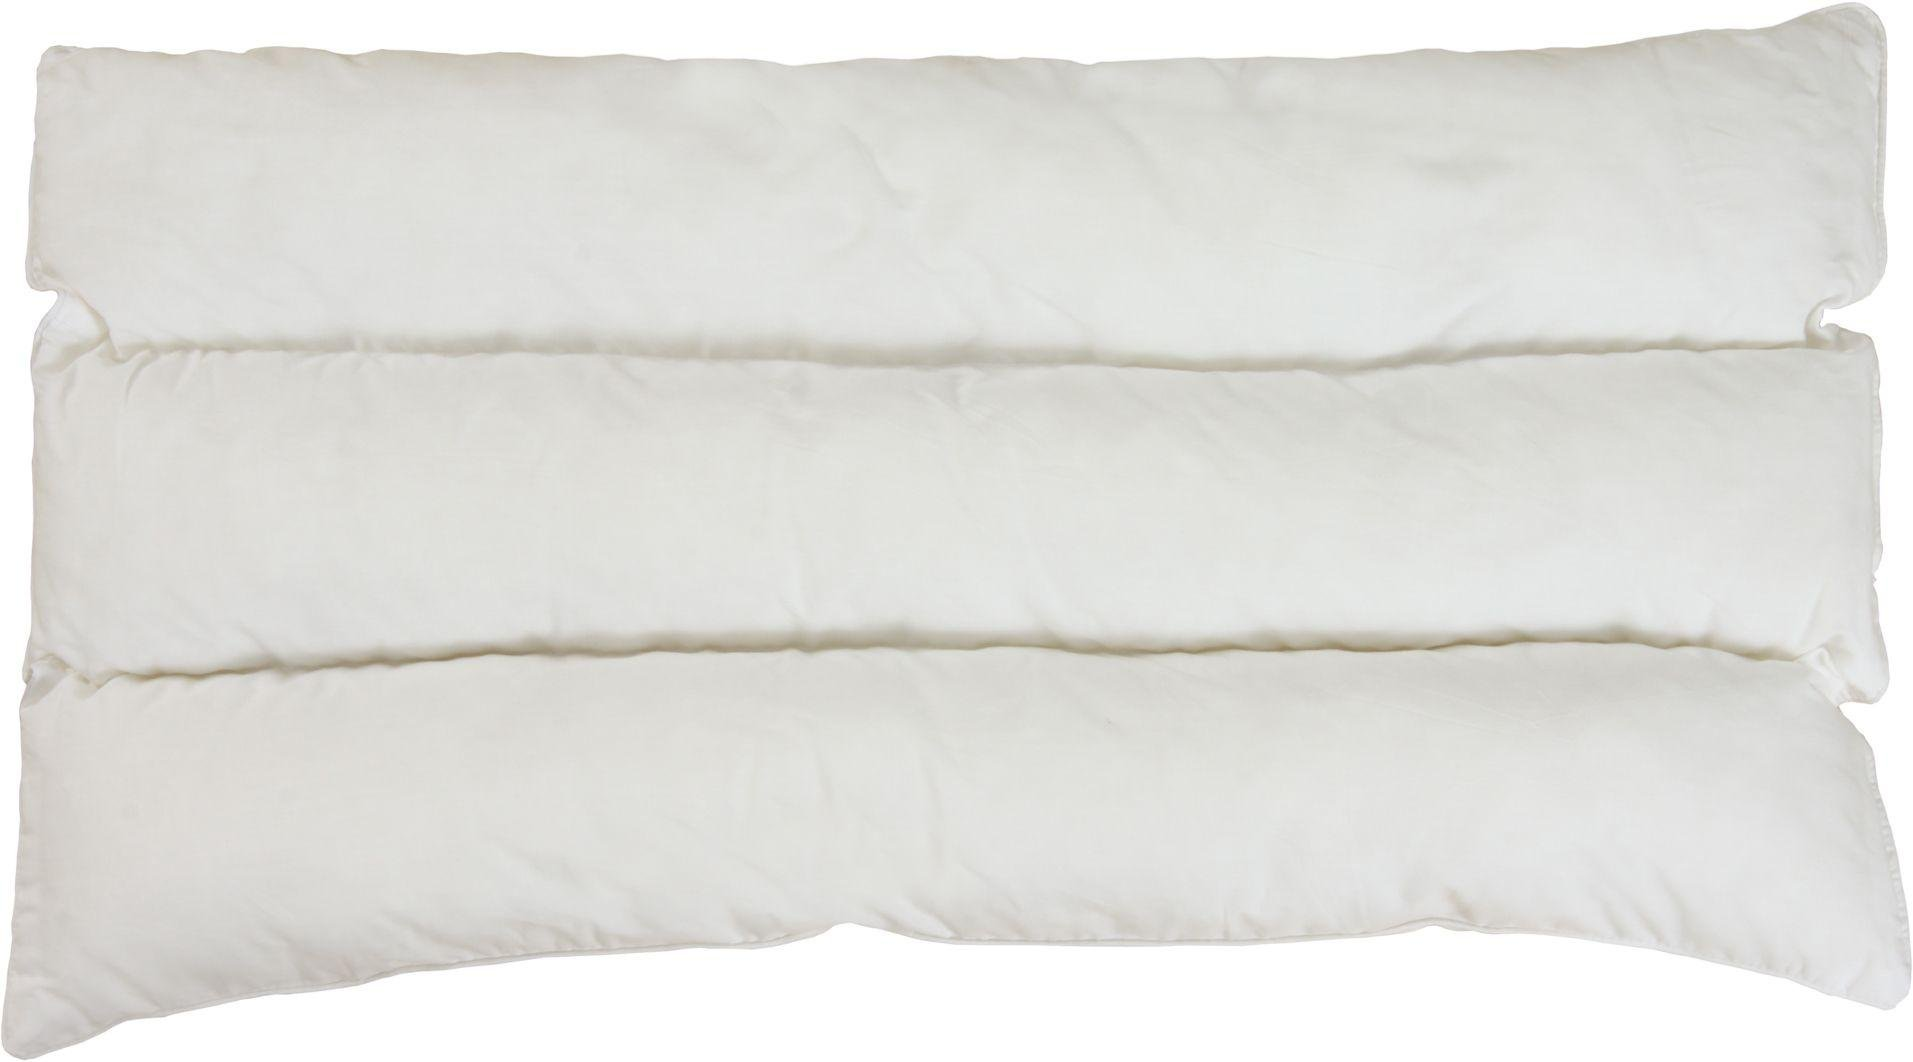 The Good Sleep Expert Slim Pillow